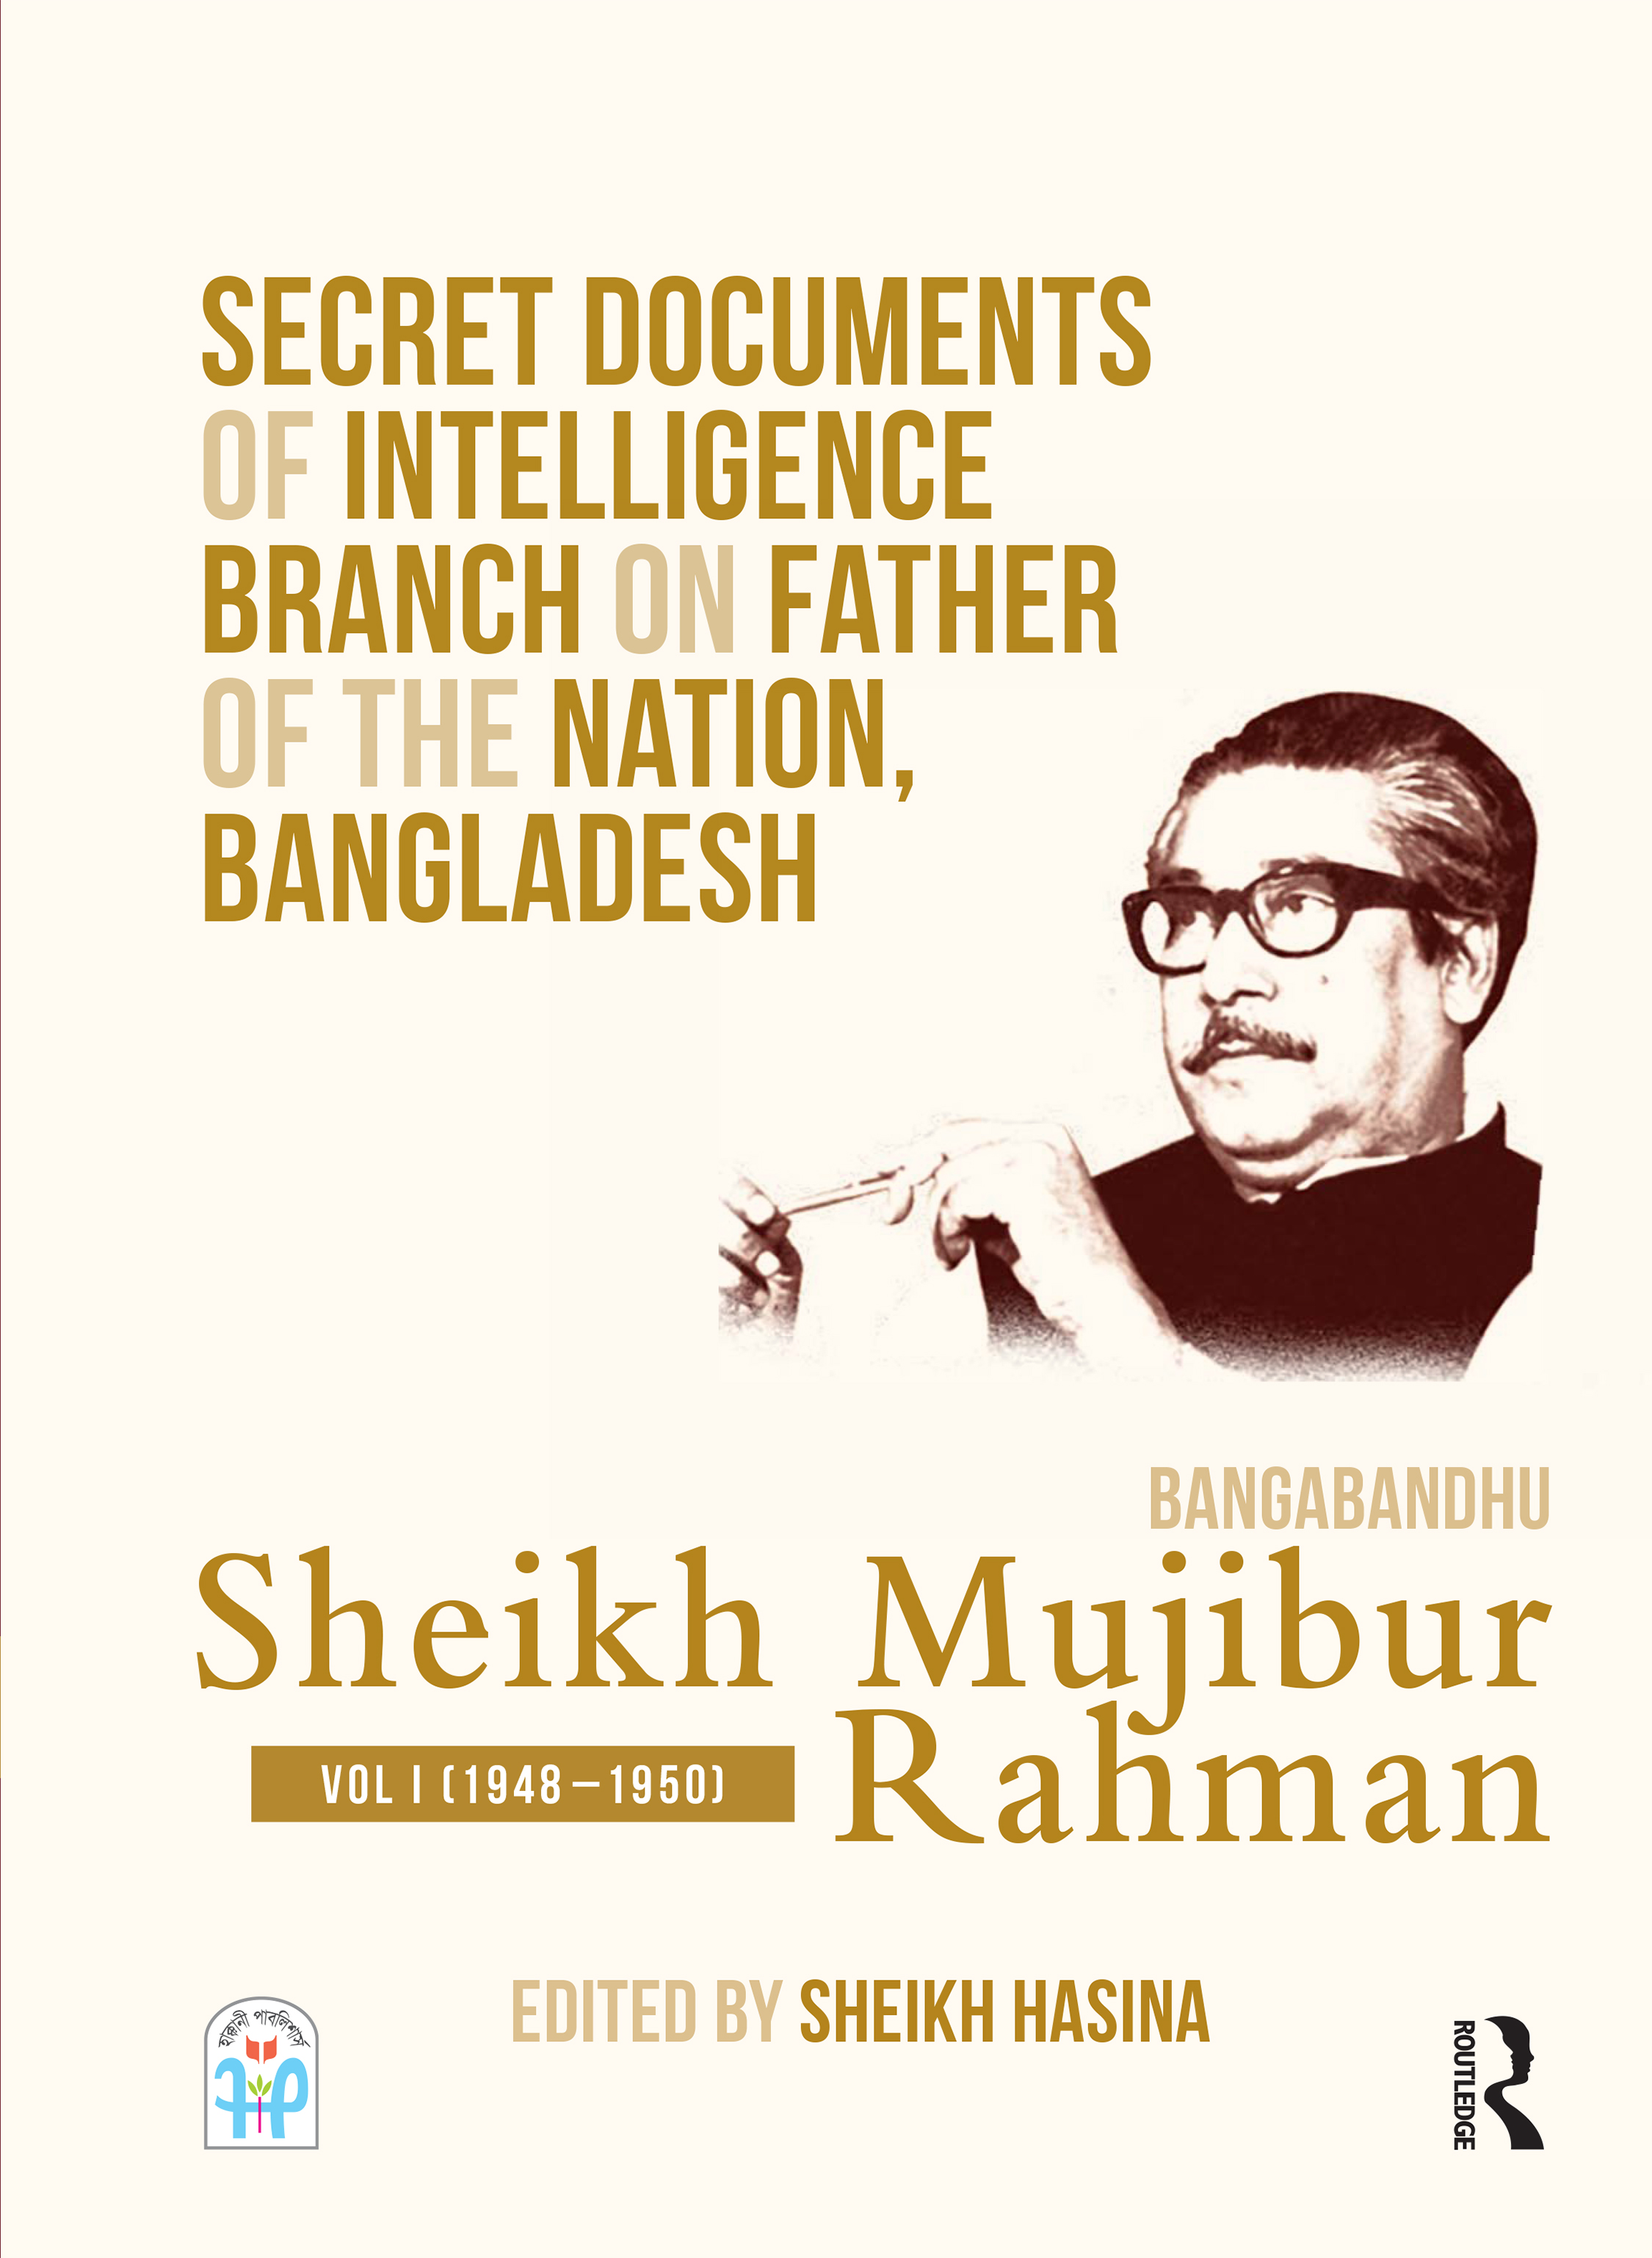 Secret Documents of Intelligence Branch on Father of The Nation, Bangladesh: Bangabandhu Sheikh Mujibur Rahman: Vol 1 (1948-1950) book cover